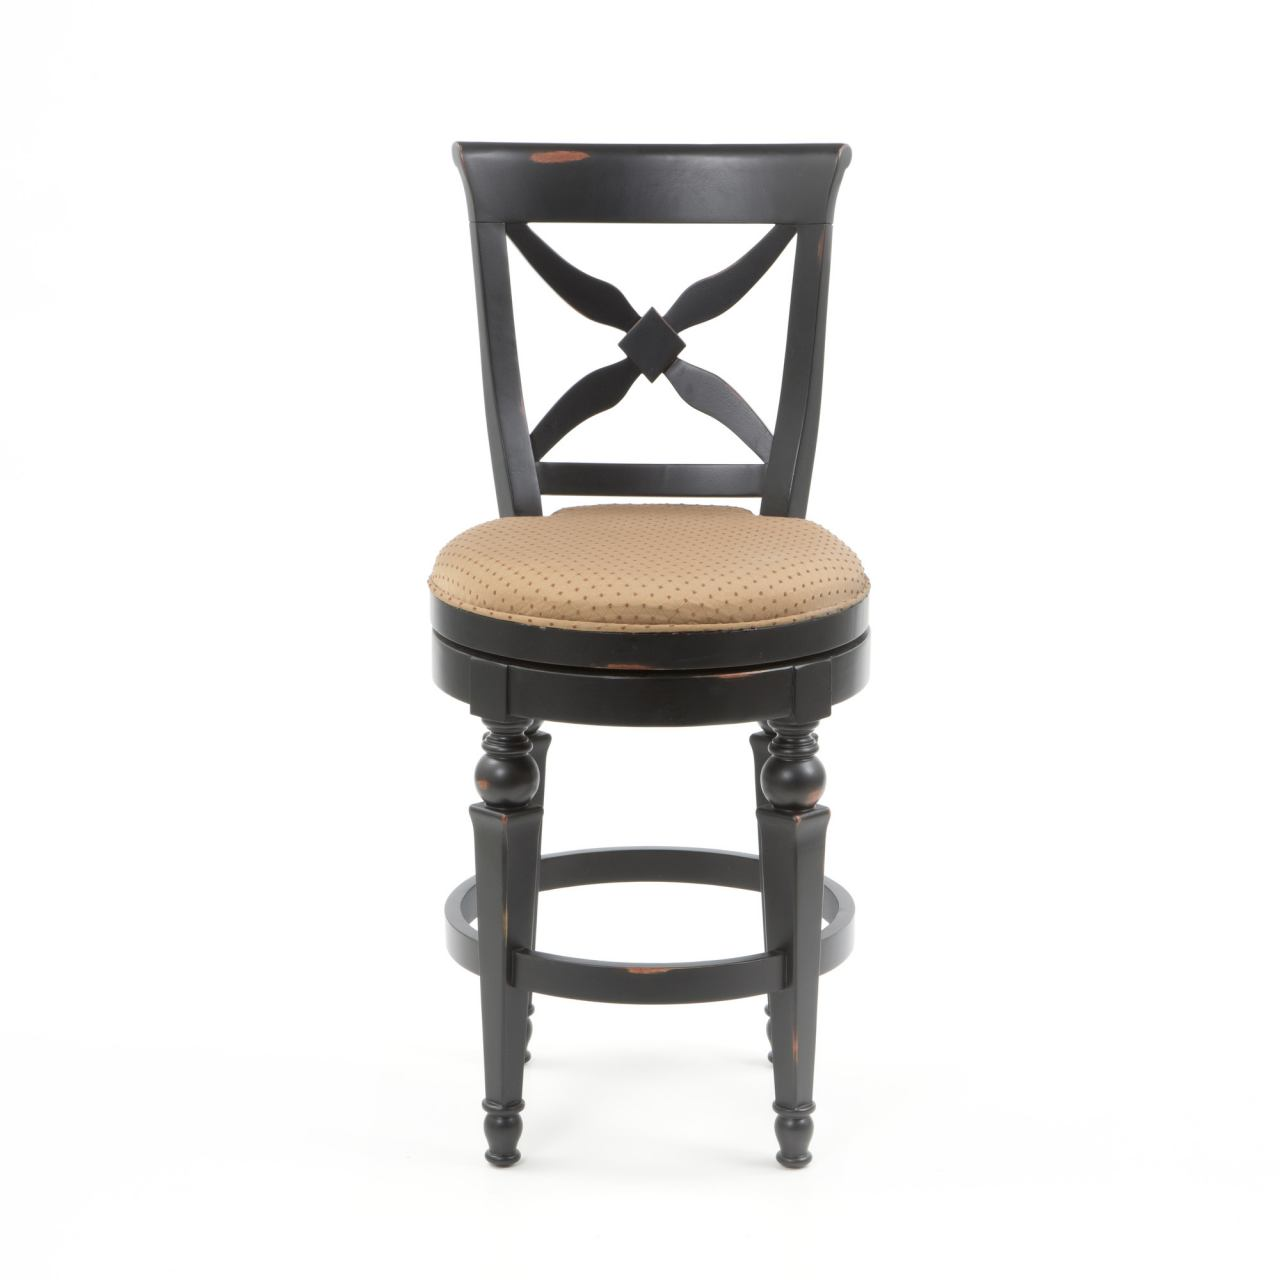 Hillsdale Northern Heights Swivel Bar Stool in Black/ Honey (Set of 2) 4439-830W